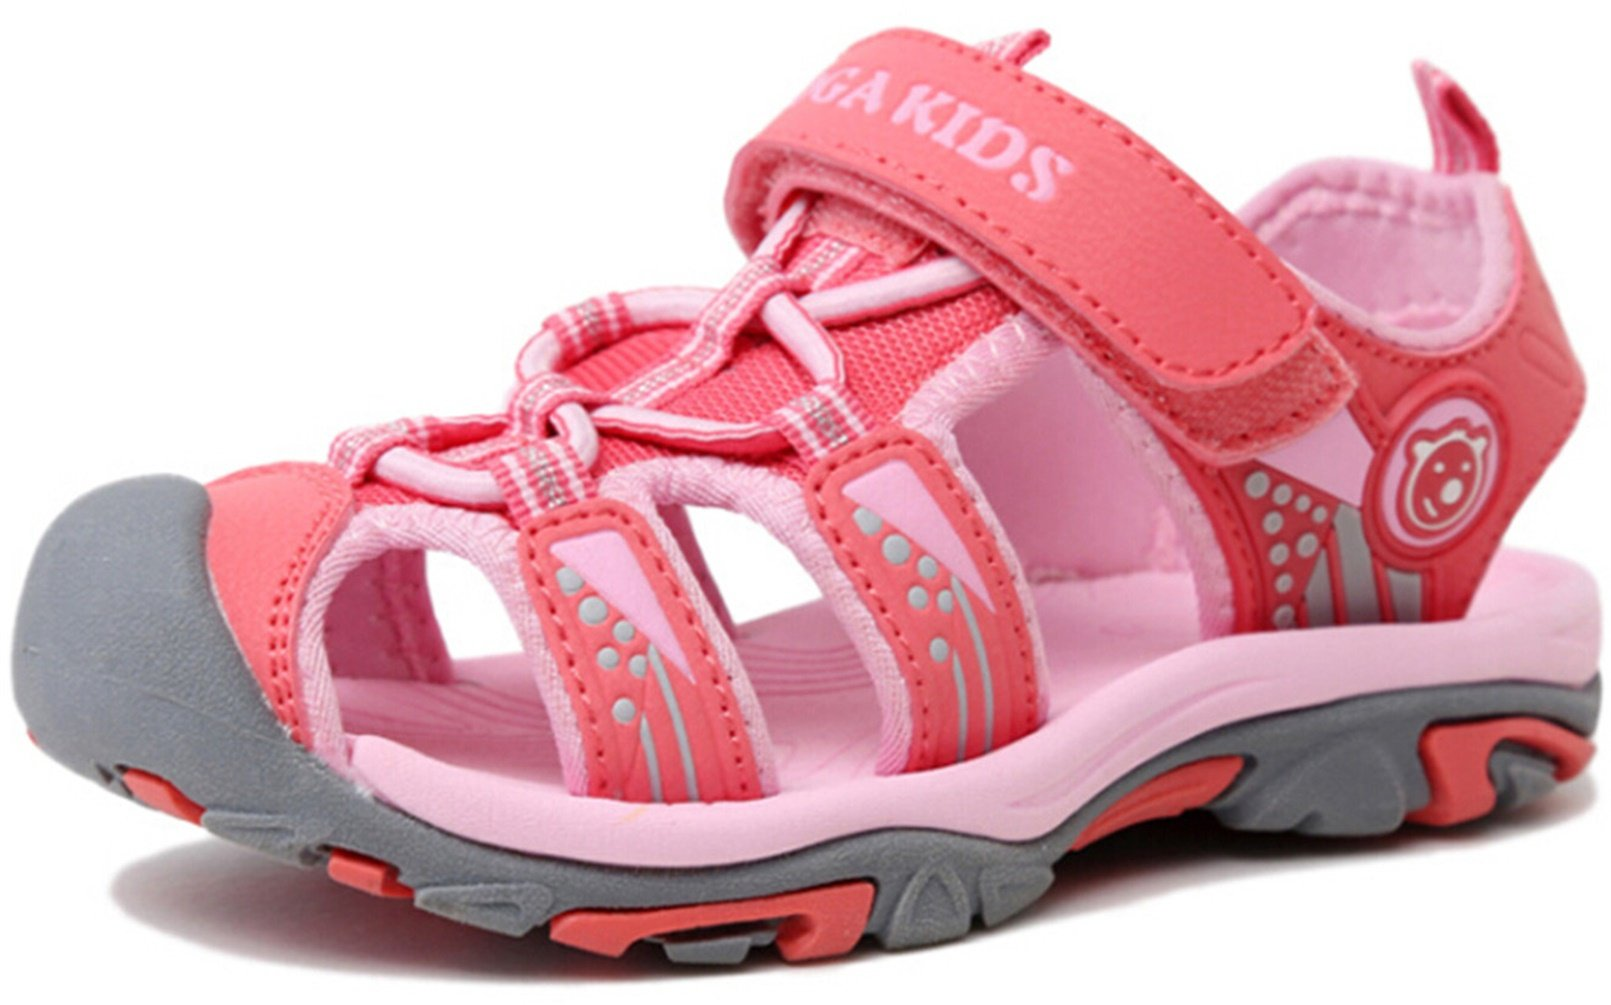 PPXID Boy's Girl's Summer Breathable Close Toe Strap Sandals (Toddler/Little Kid/Big Kid)-Pink 11 US Size